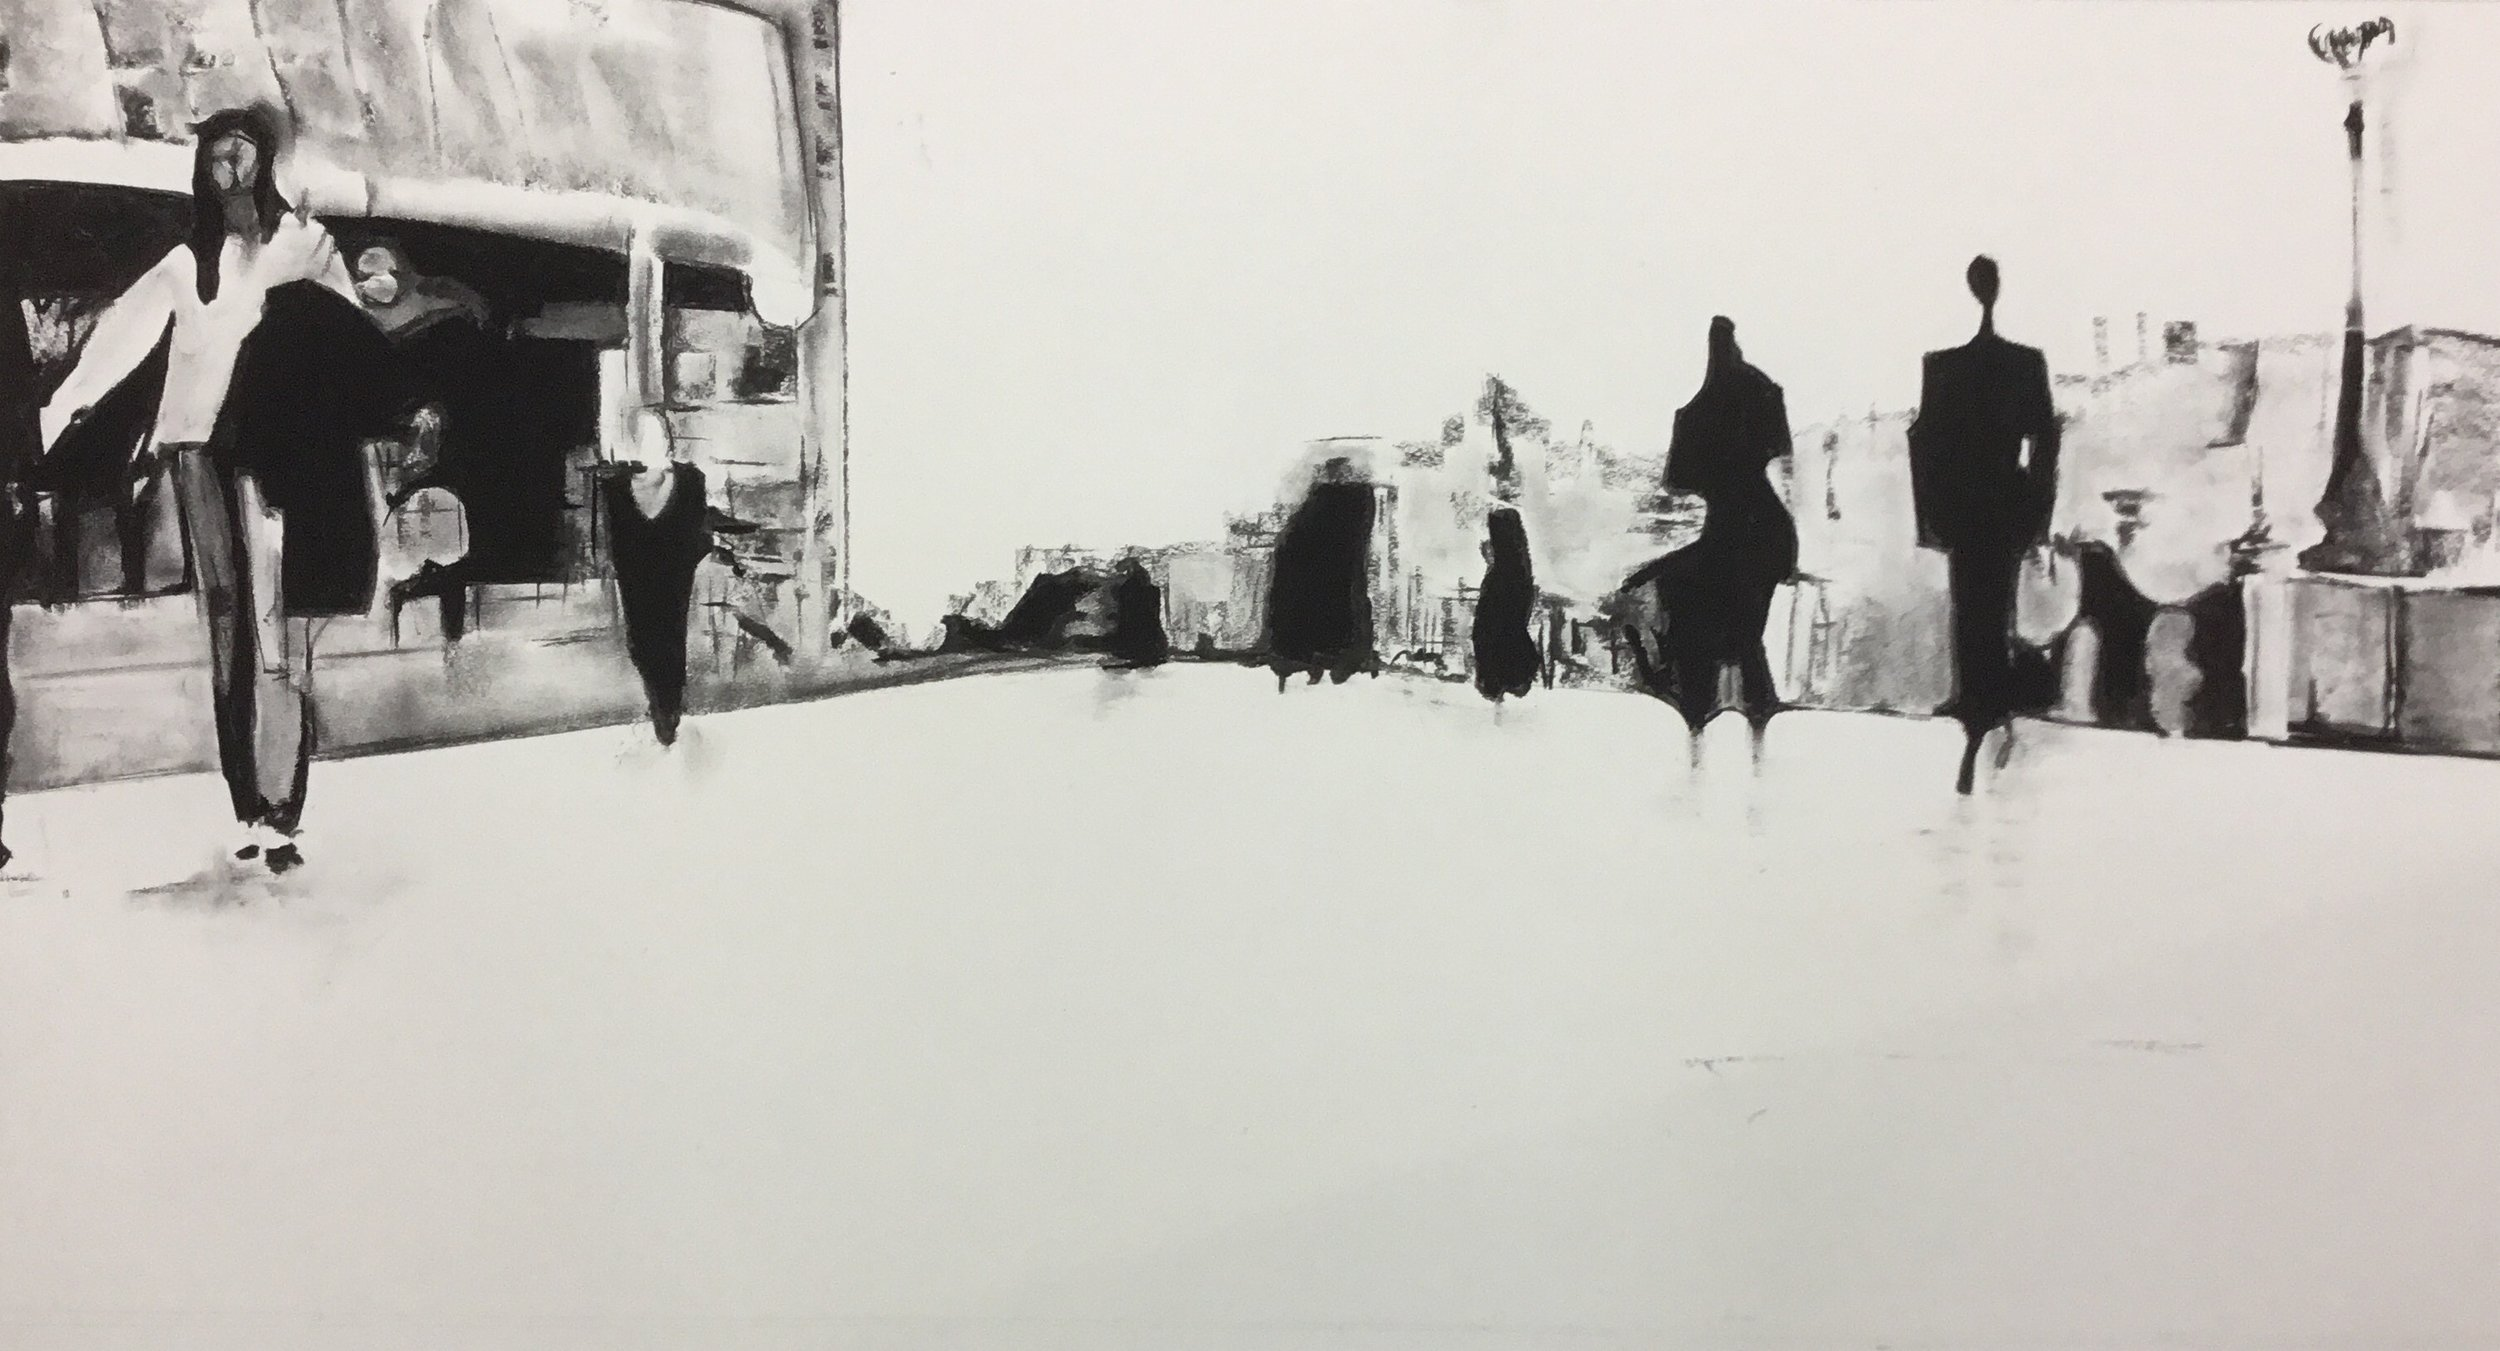 The commute i. charcoal on fabriano paper 117x69cm framed